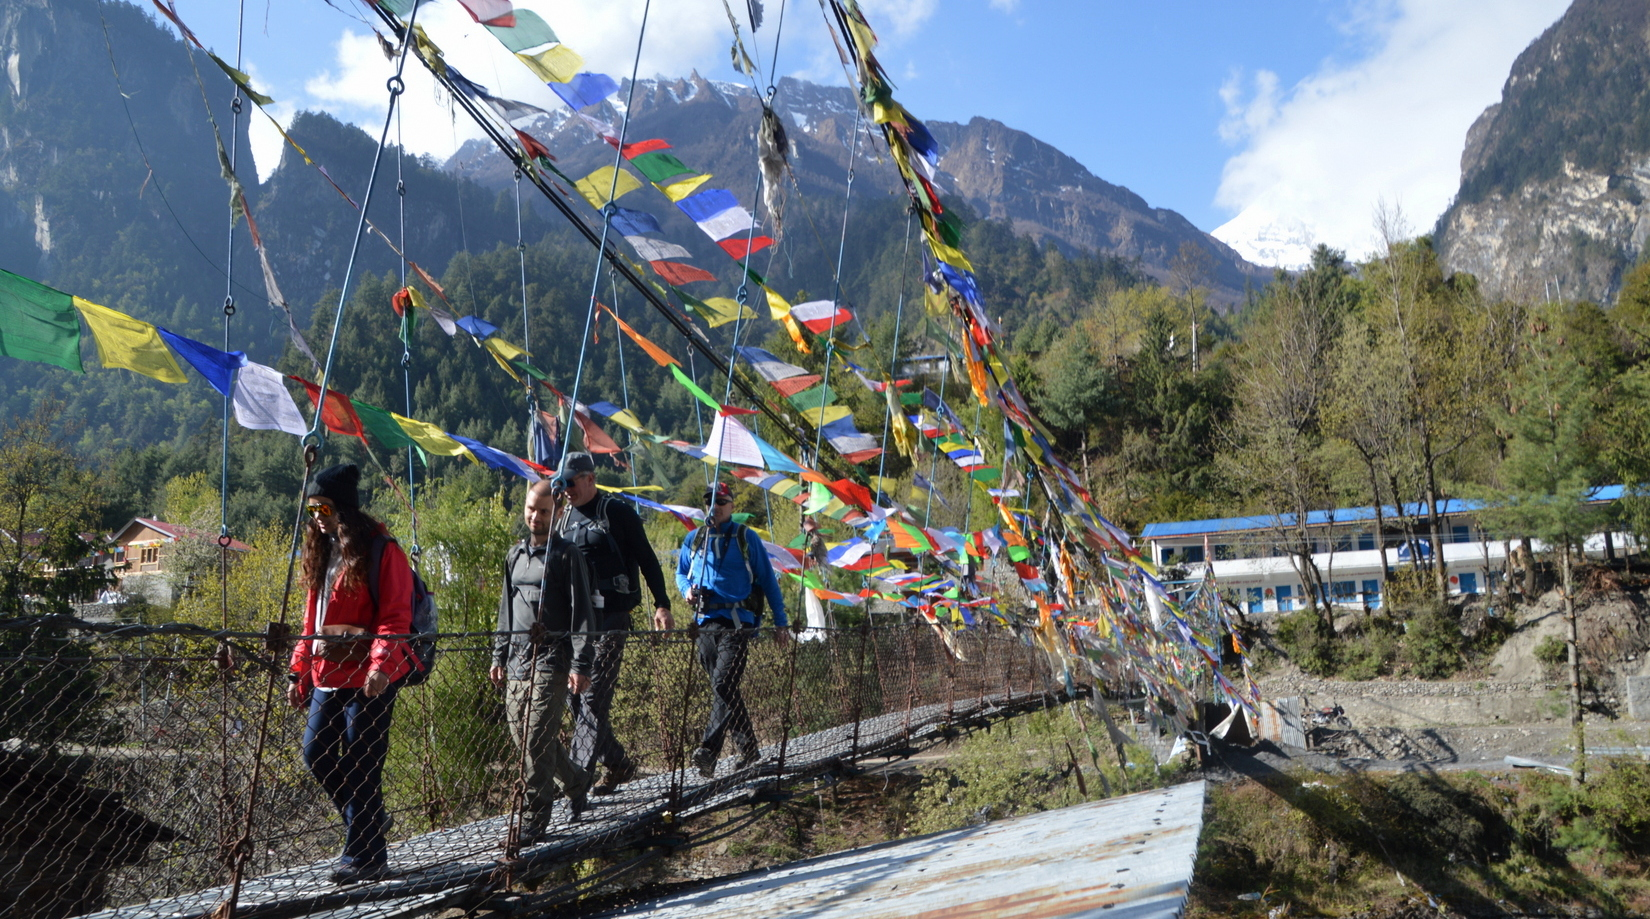 Four hikers walk across a cable bridge bedecked in prayer flags near Chame, Nepal